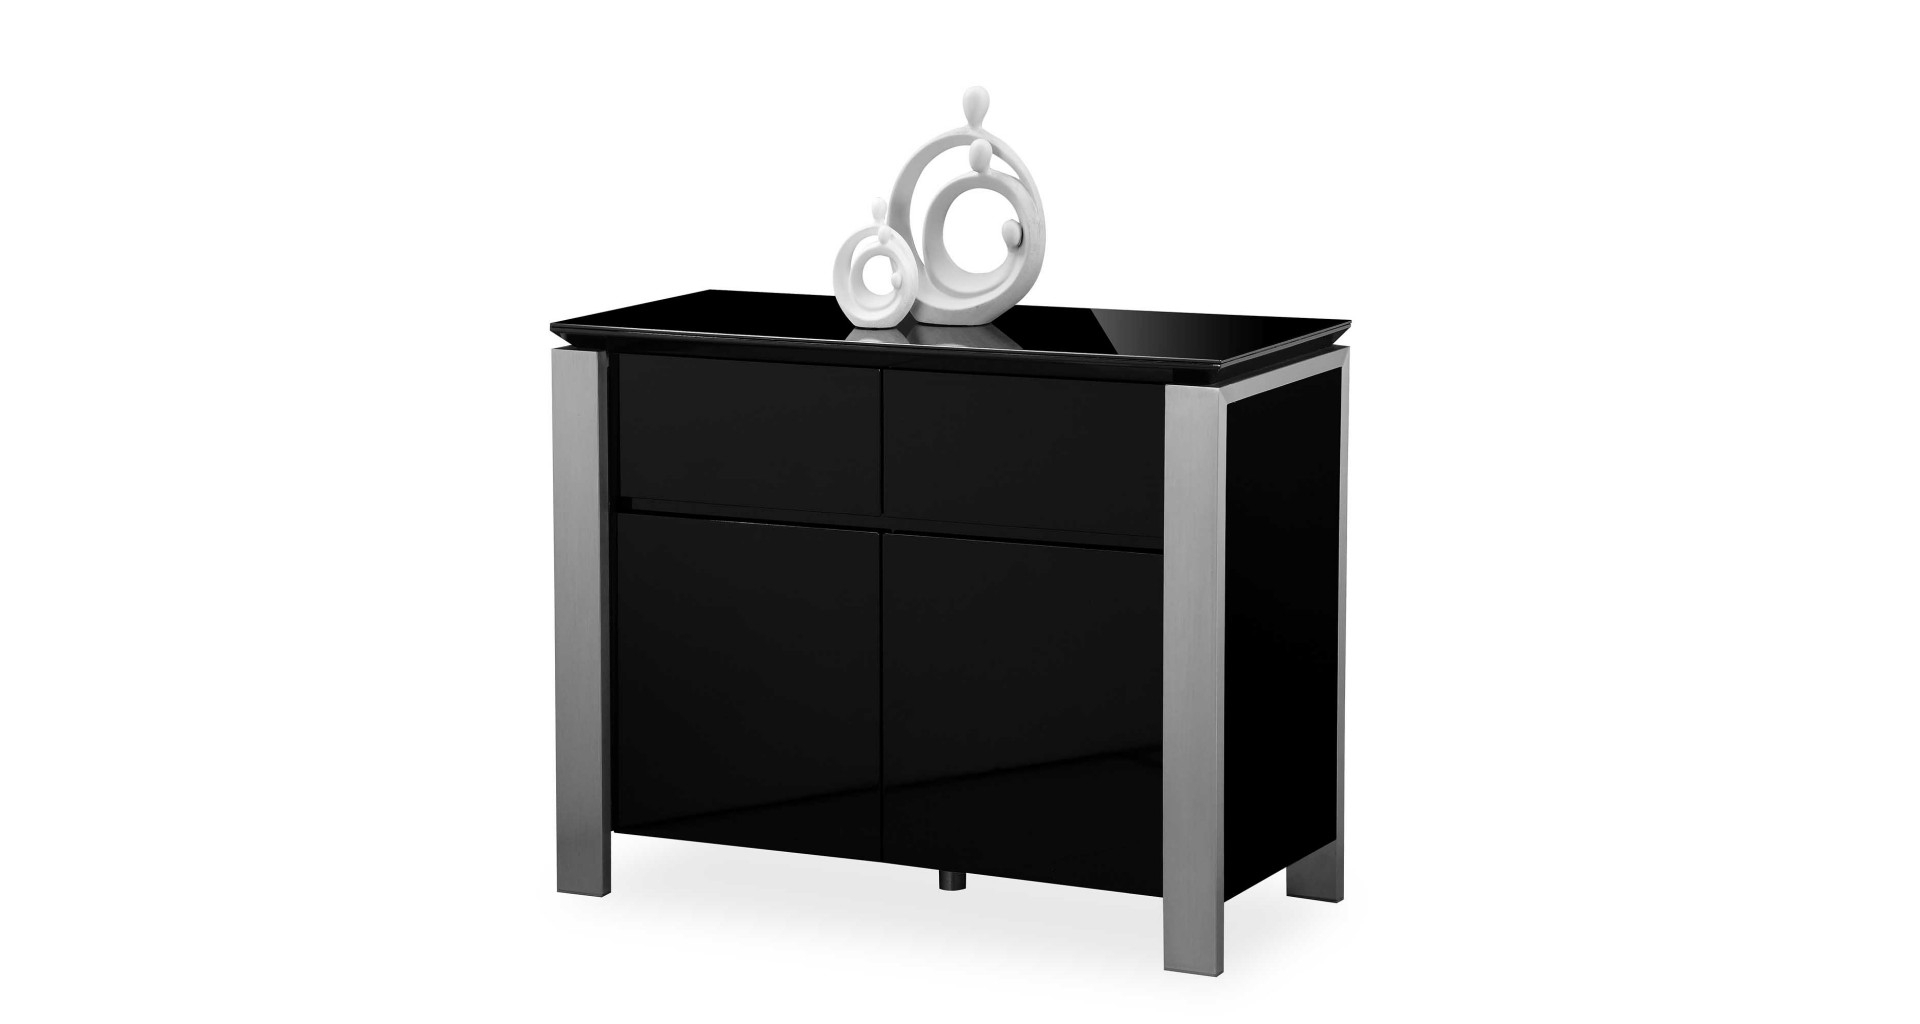 Tribeca – Small Sideboard – Black High Gloss Pertaining To Tribeca Sideboards (View 19 of 20)